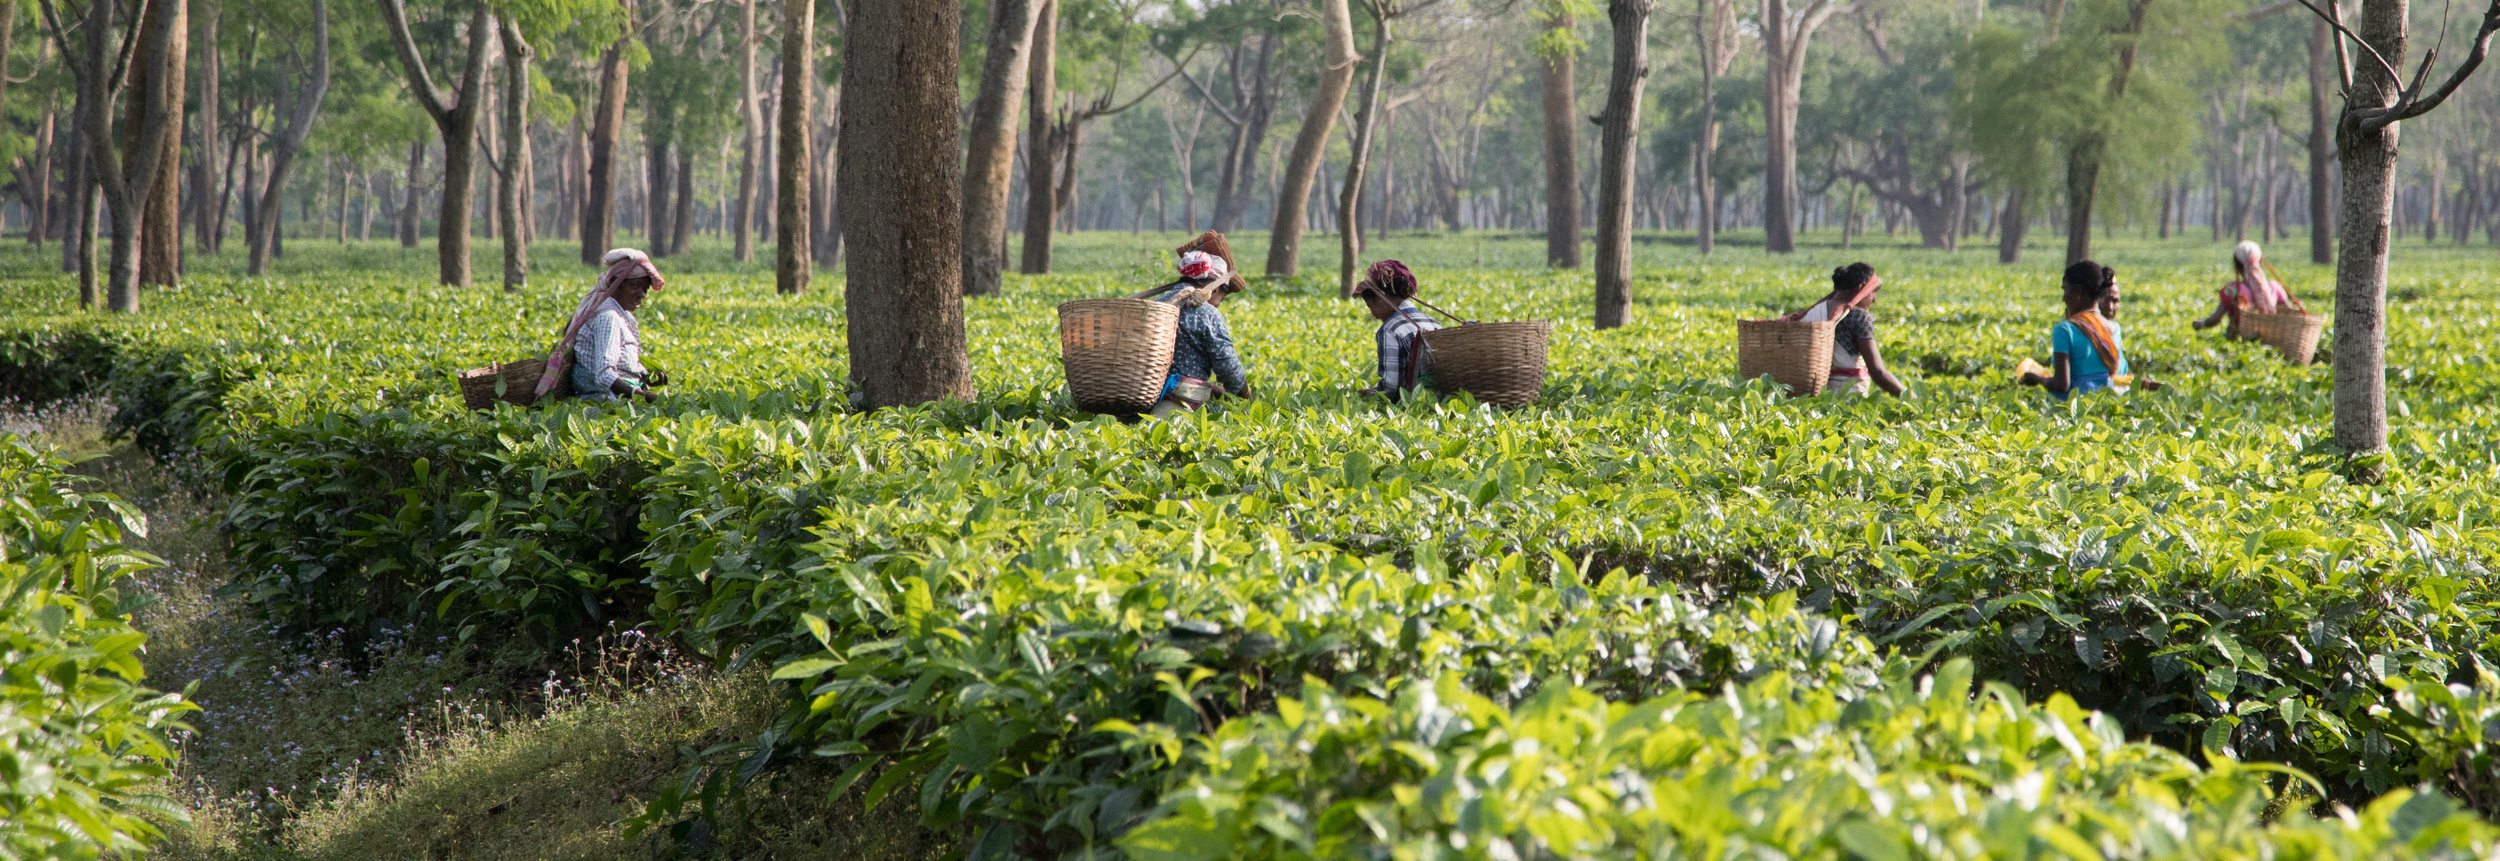 Tea workers picking tea in Assam. Credit: HELM Studio